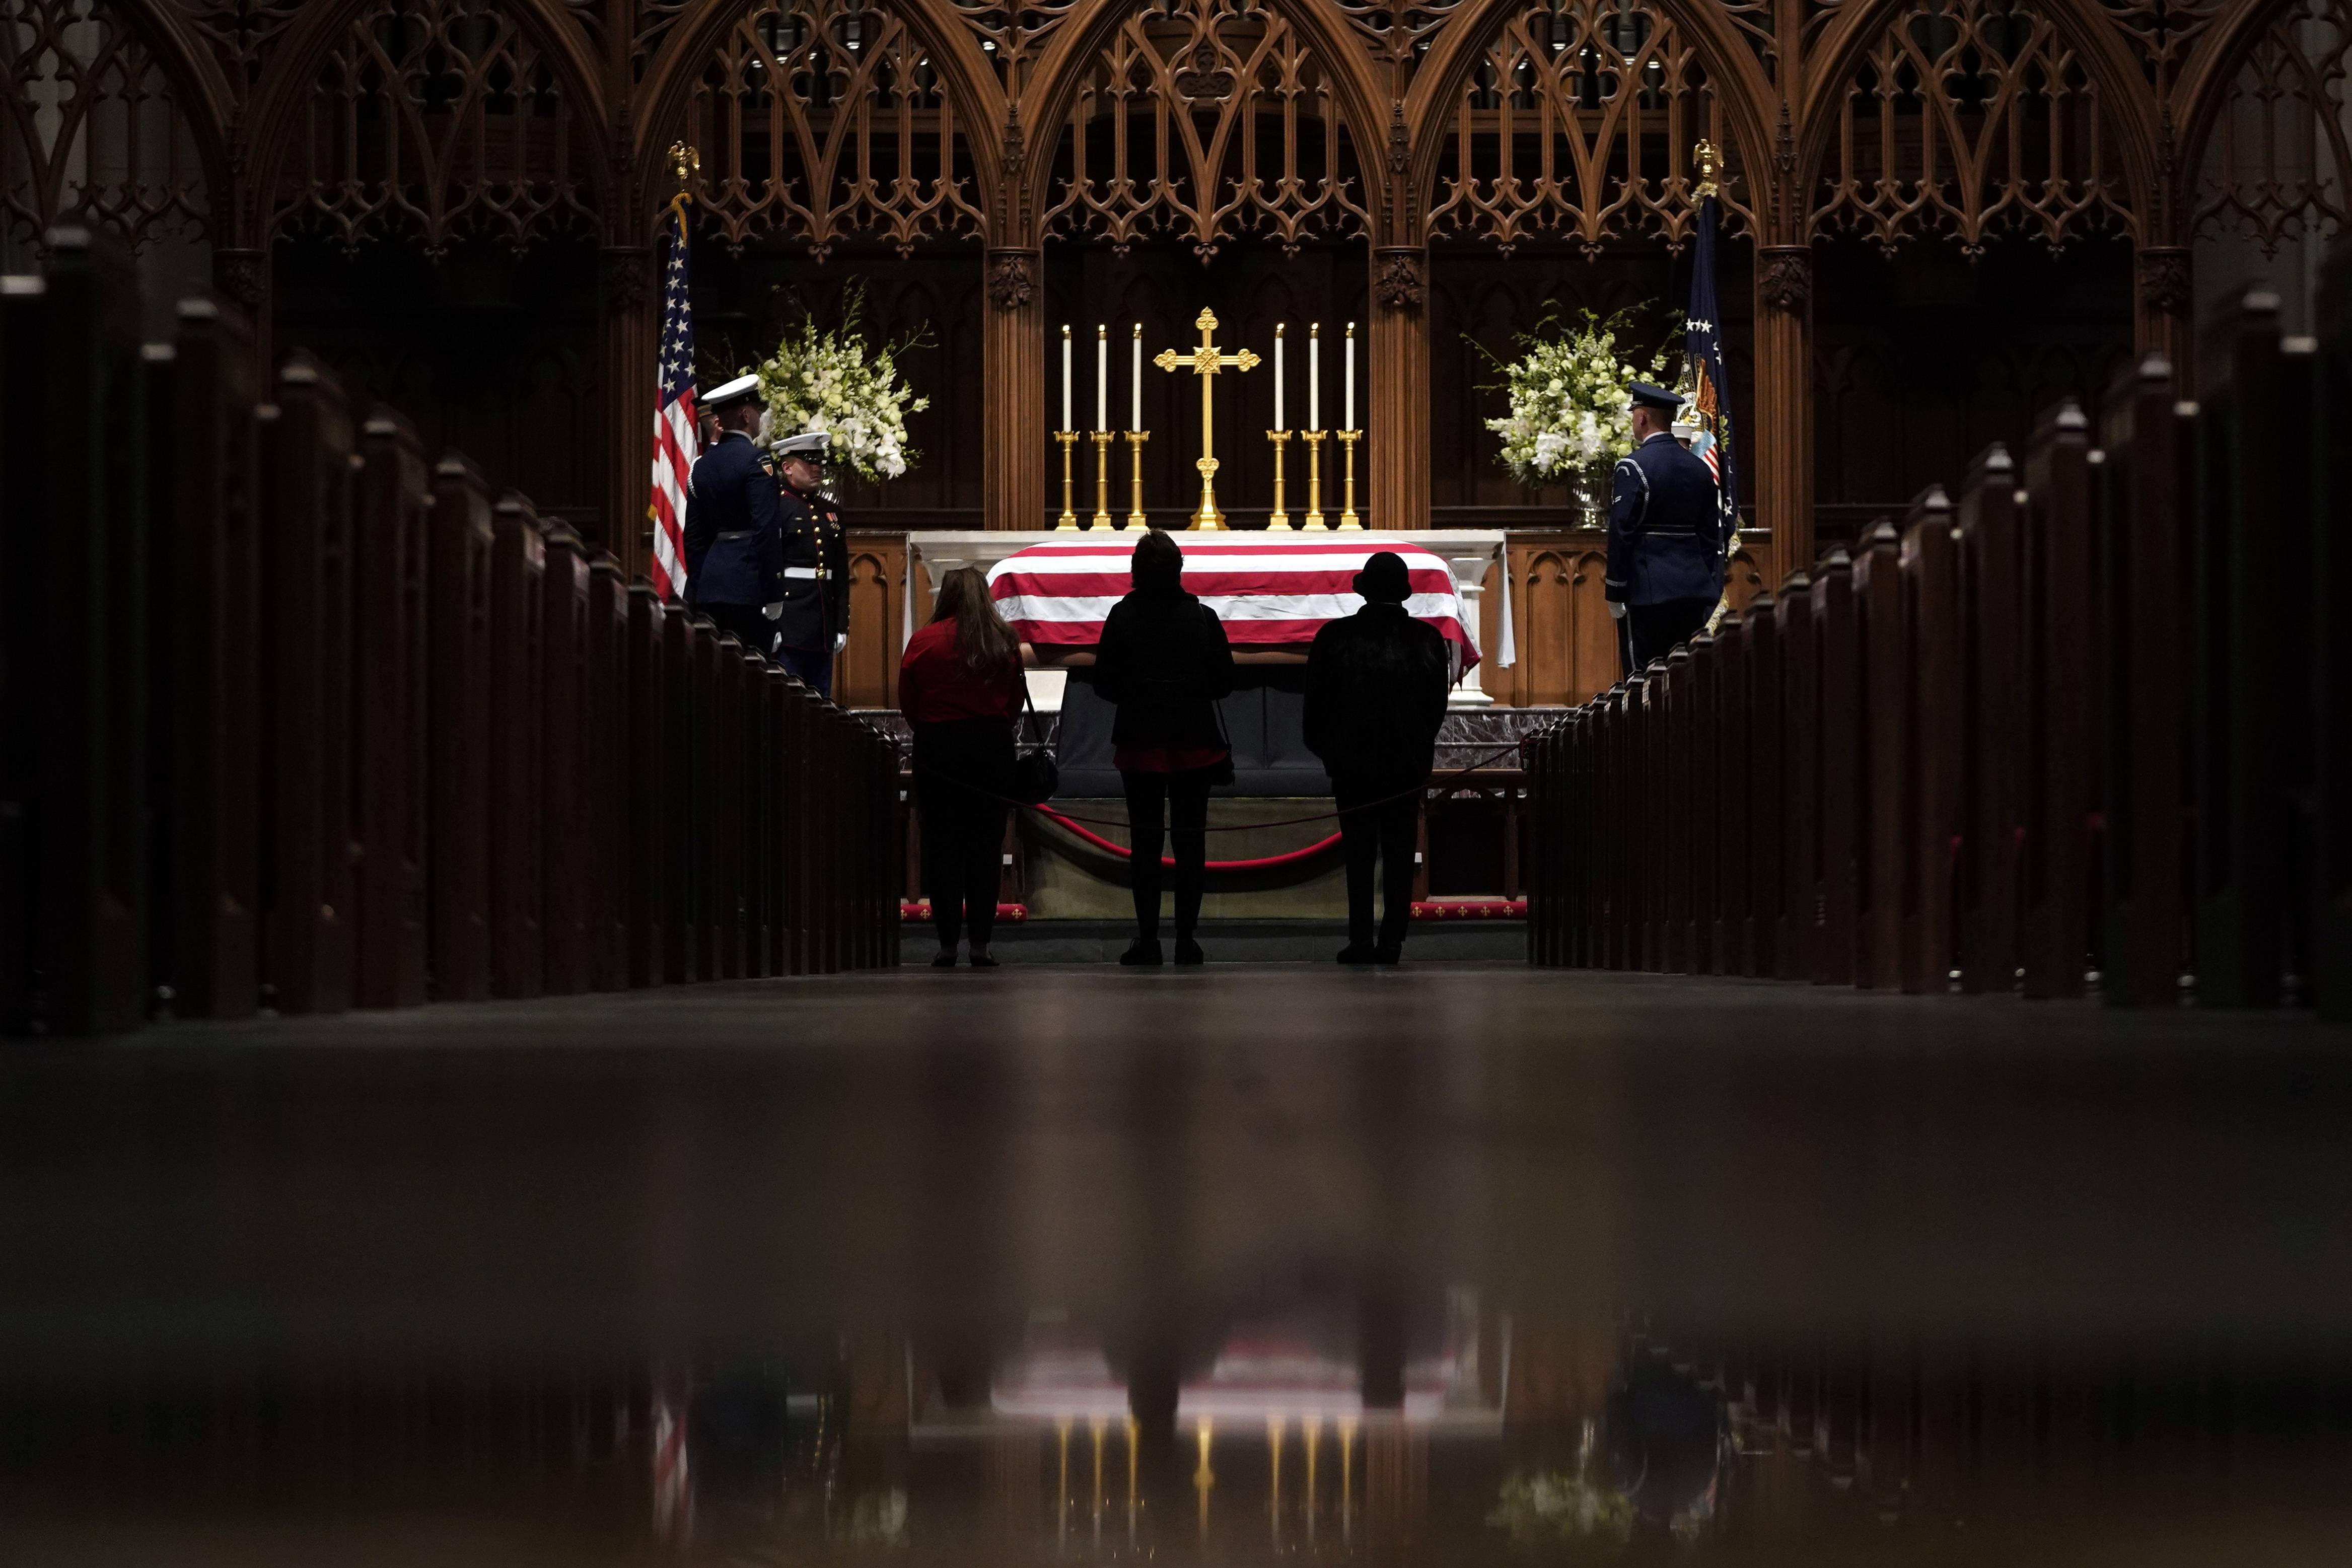 People pay their respects Wednesday as former President George H.W. Bush lies in repose at St. Martin's Episcopal Church in Houston.